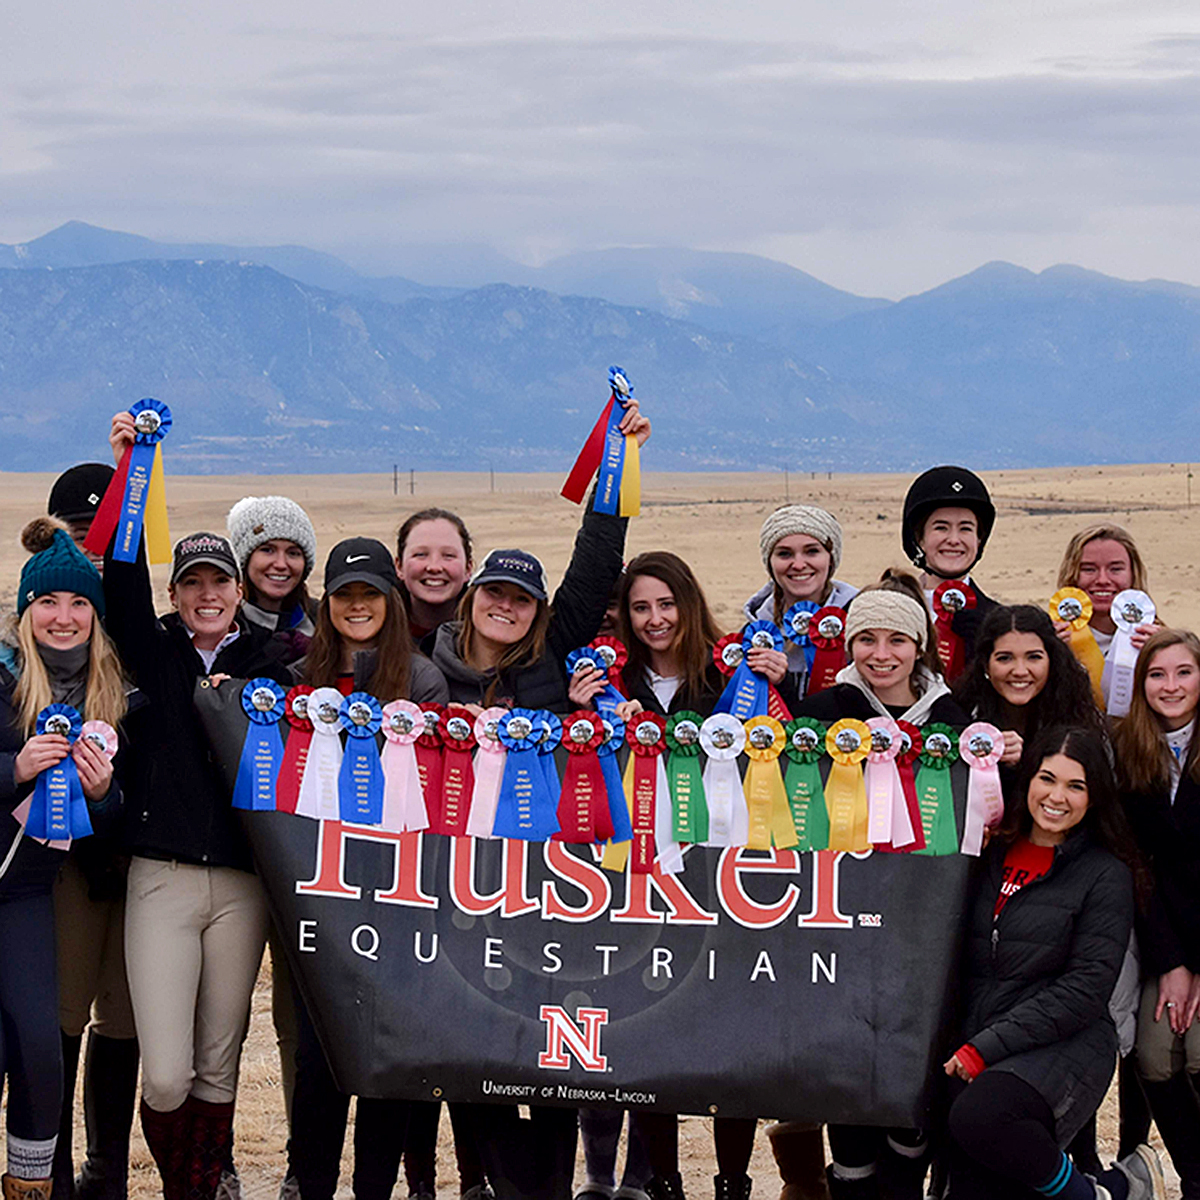 Members of the 2018 Equestrian Team pose for a                         picture in front of a landscape of mountains.